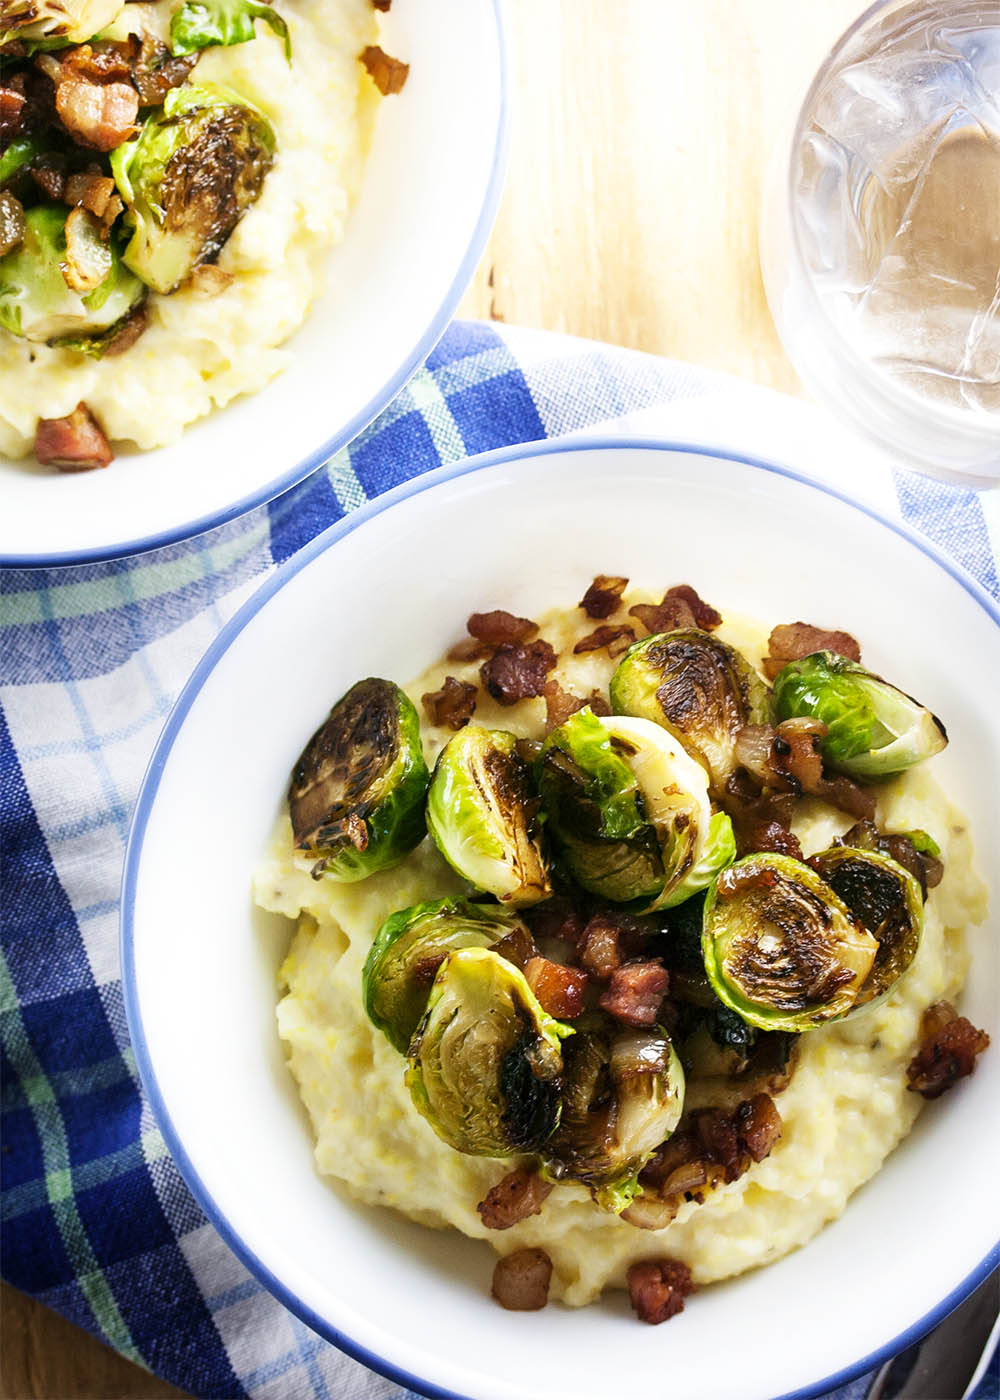 Creamy Polenta Topped with Brussels Sprouts and Pancetta - Pan roasted brussel sprouts, crispy pancetta, and creamy, cheesy polenta all in one bowl? That's the definition of yummy. | justalittlebitofbacon.com